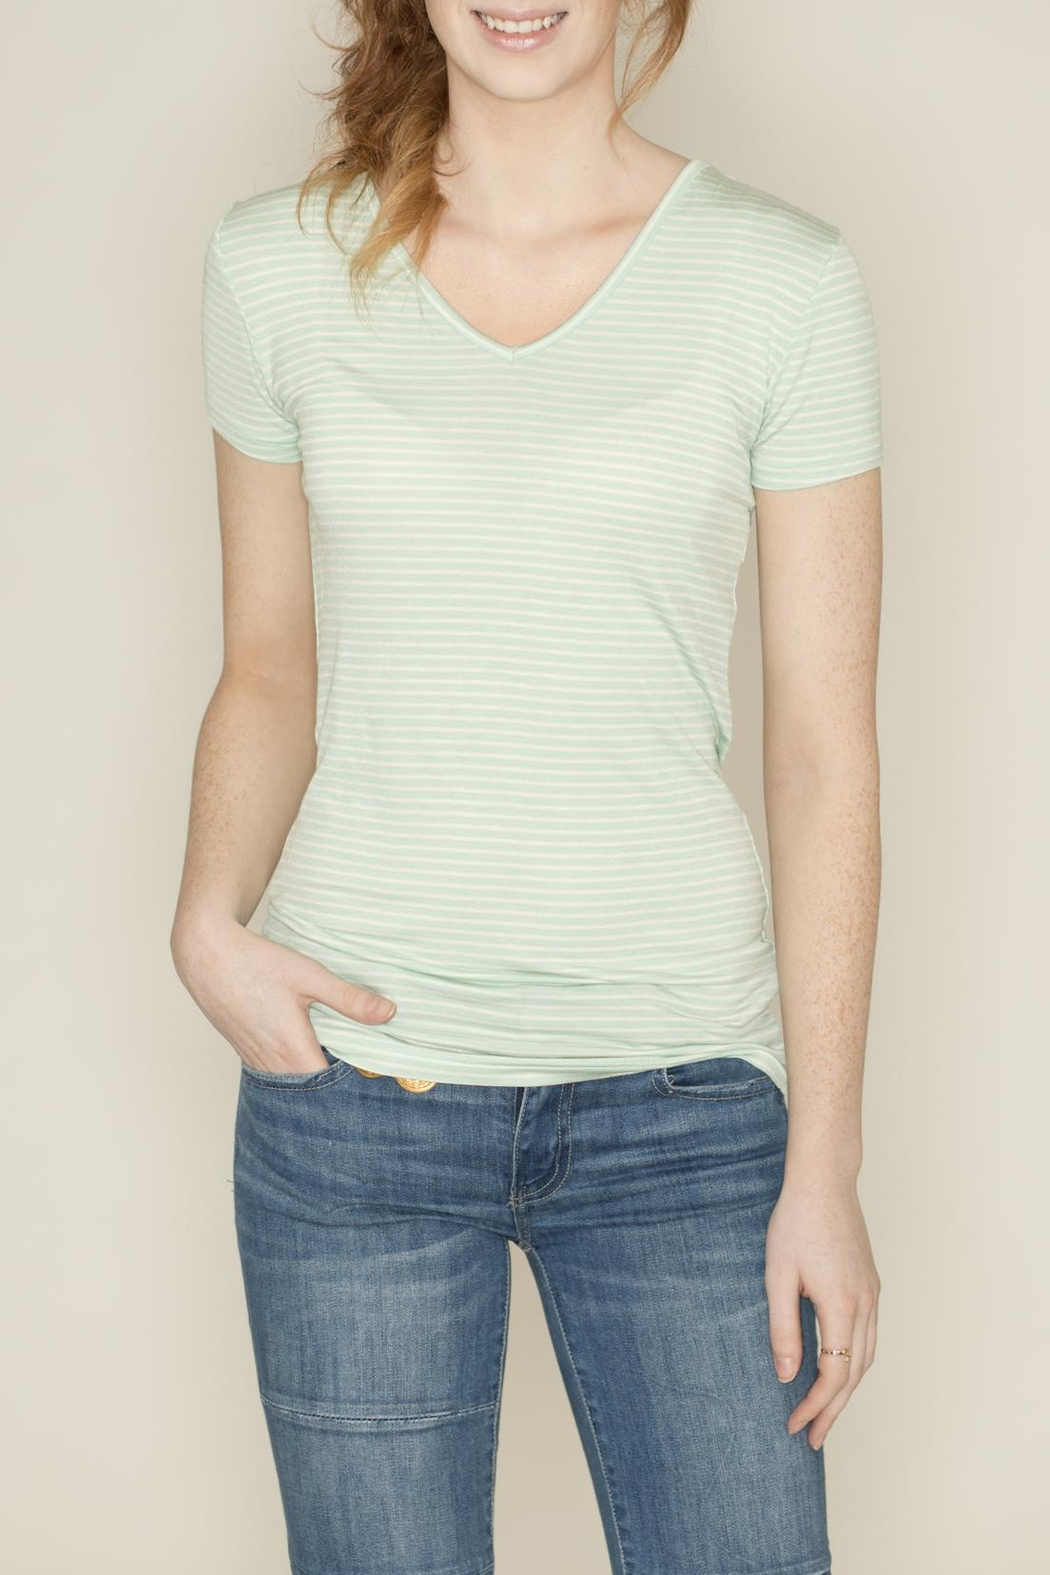 d7de5a8b286b8 Zenana Outfitters V Neck Pinstripe Tee from Philadelphia by May 23 ...